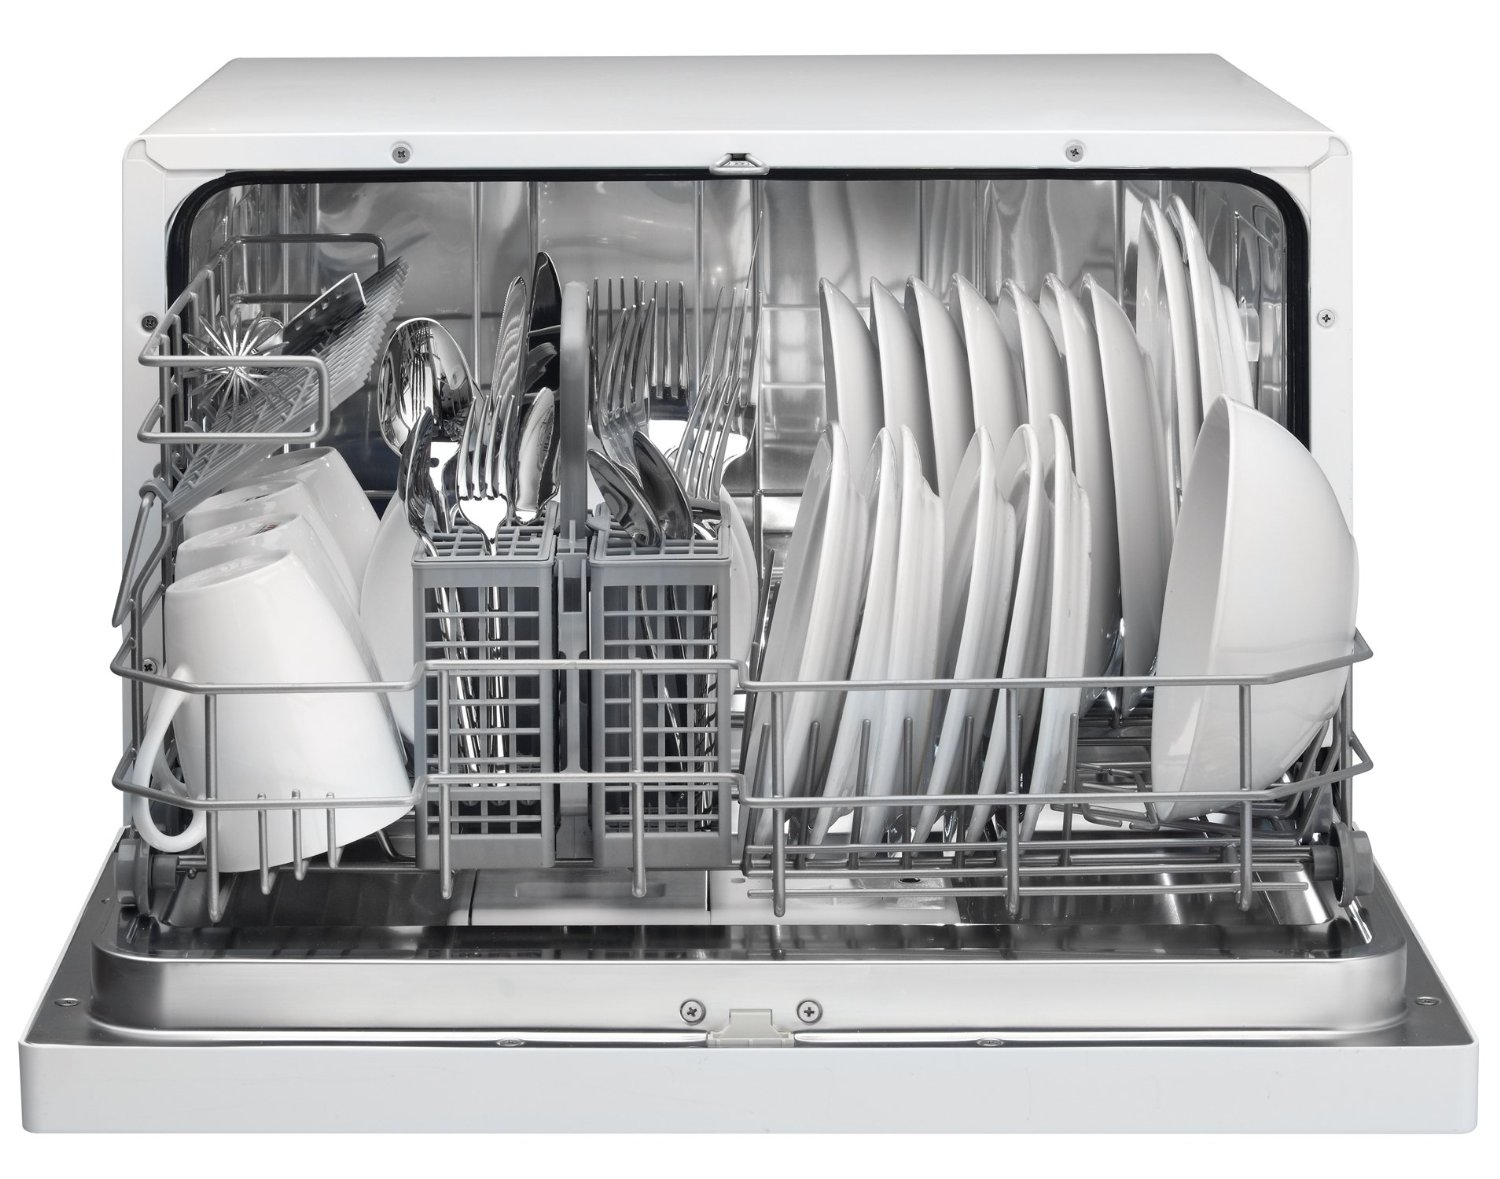 Avanti Countertop Dishwasher Danby Ddw611wled Countertop Dishwasher Features